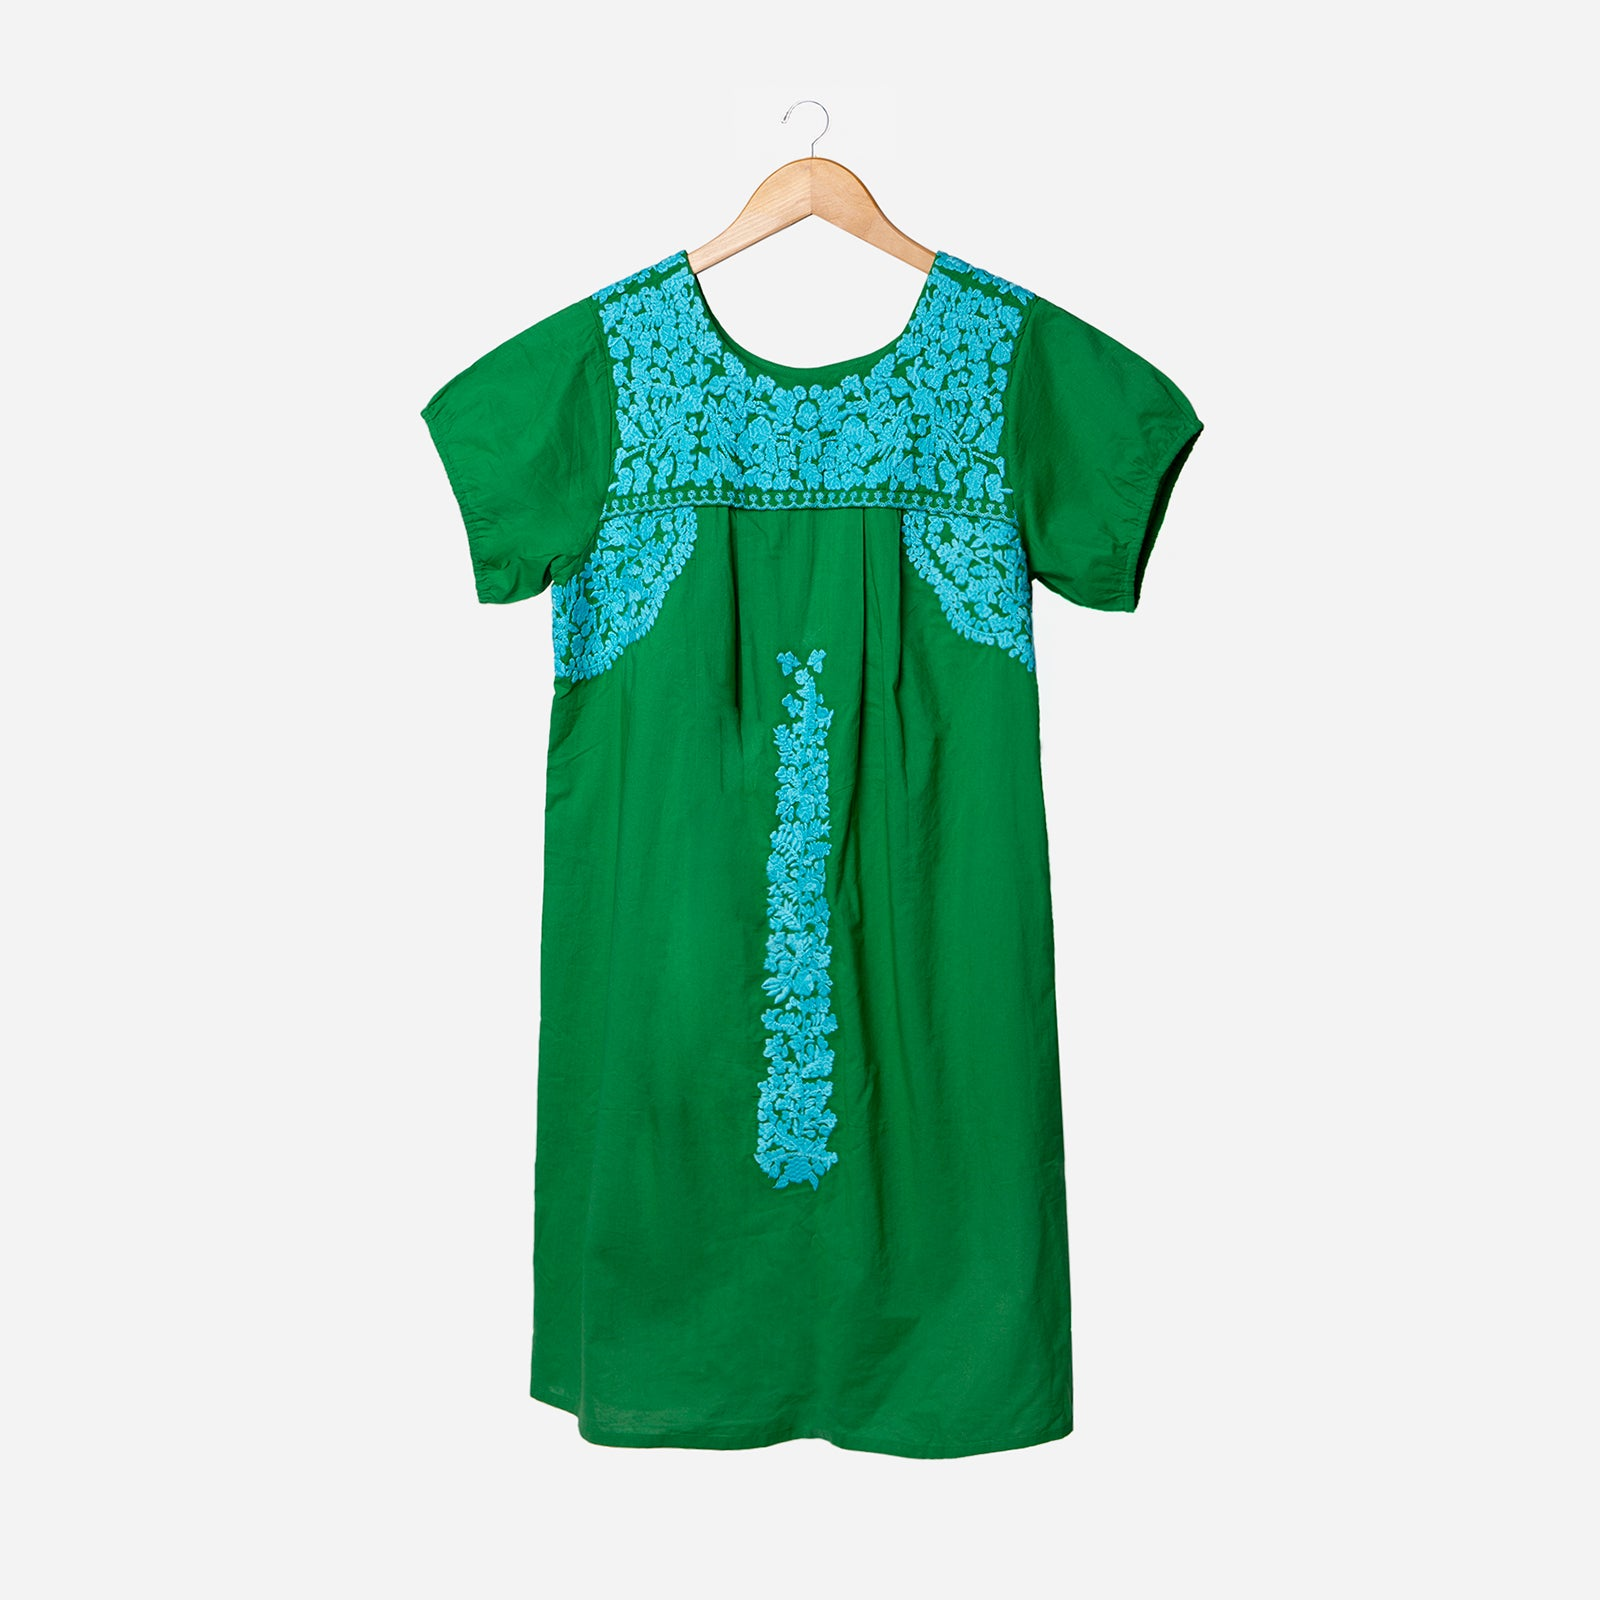 Floral Embroidered Lace Dress Green Light Blue